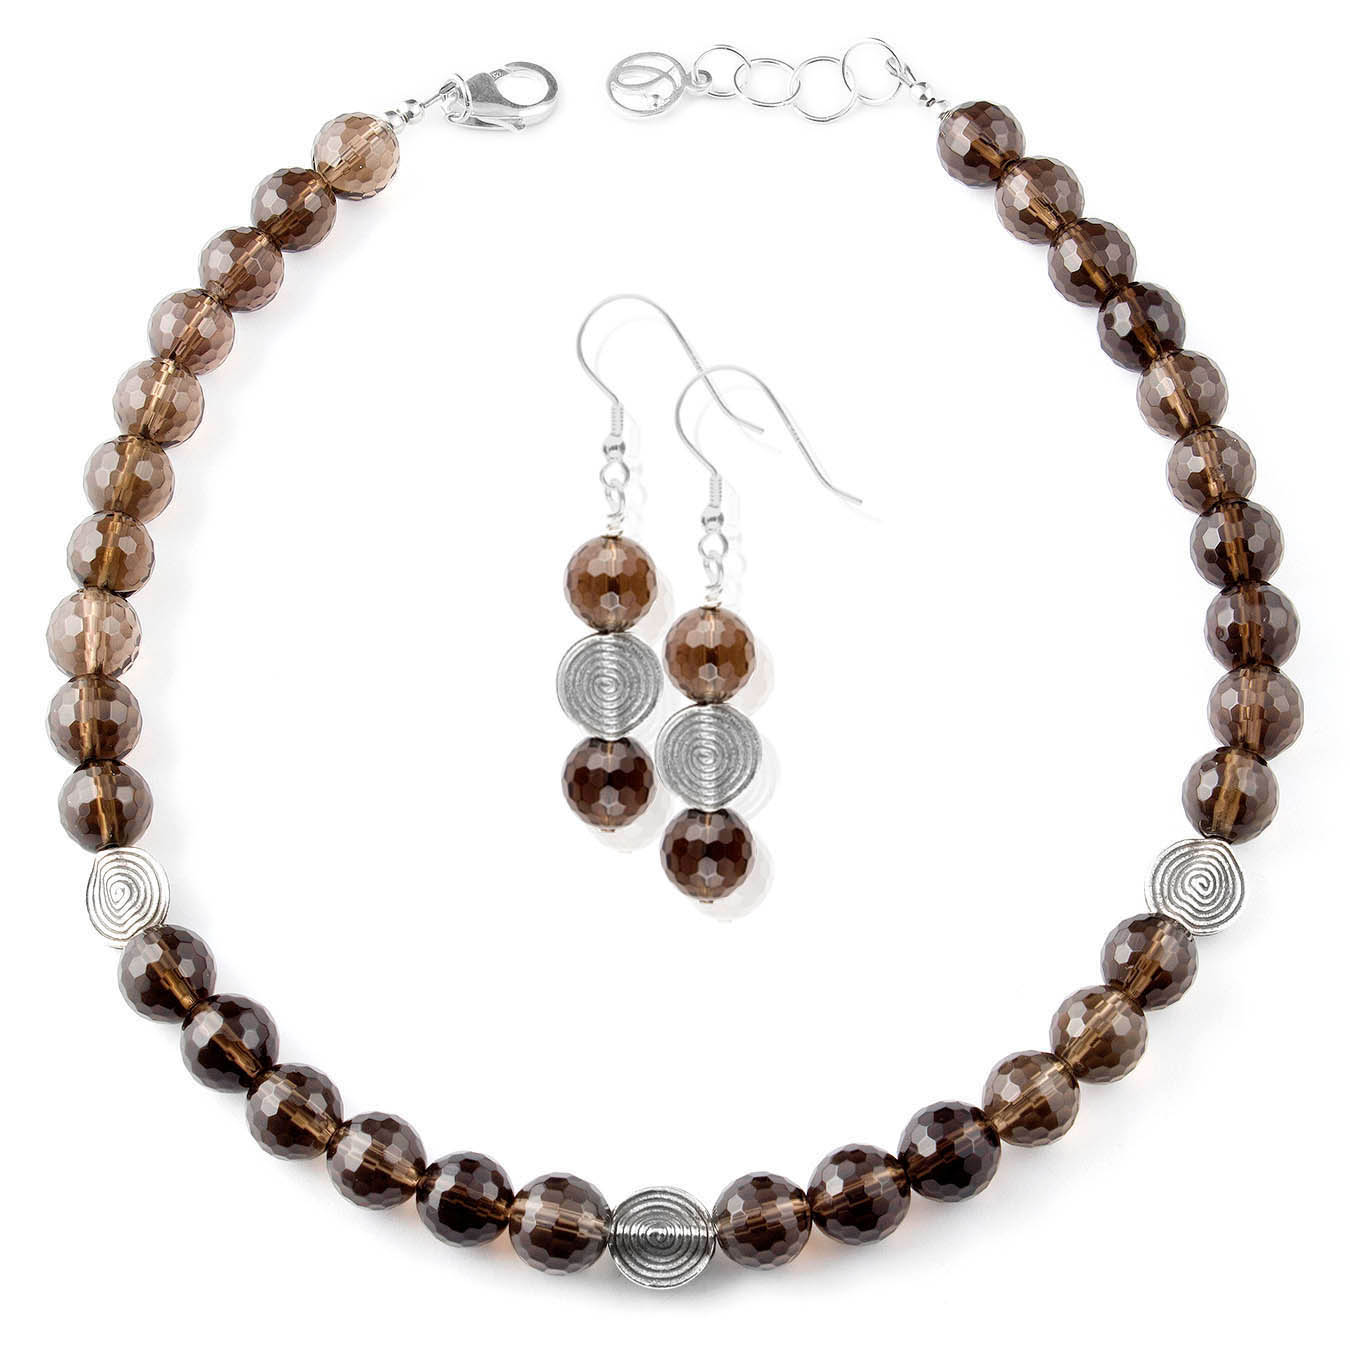 Handcrafted bead jewelry made with smoky quartz and thai silver